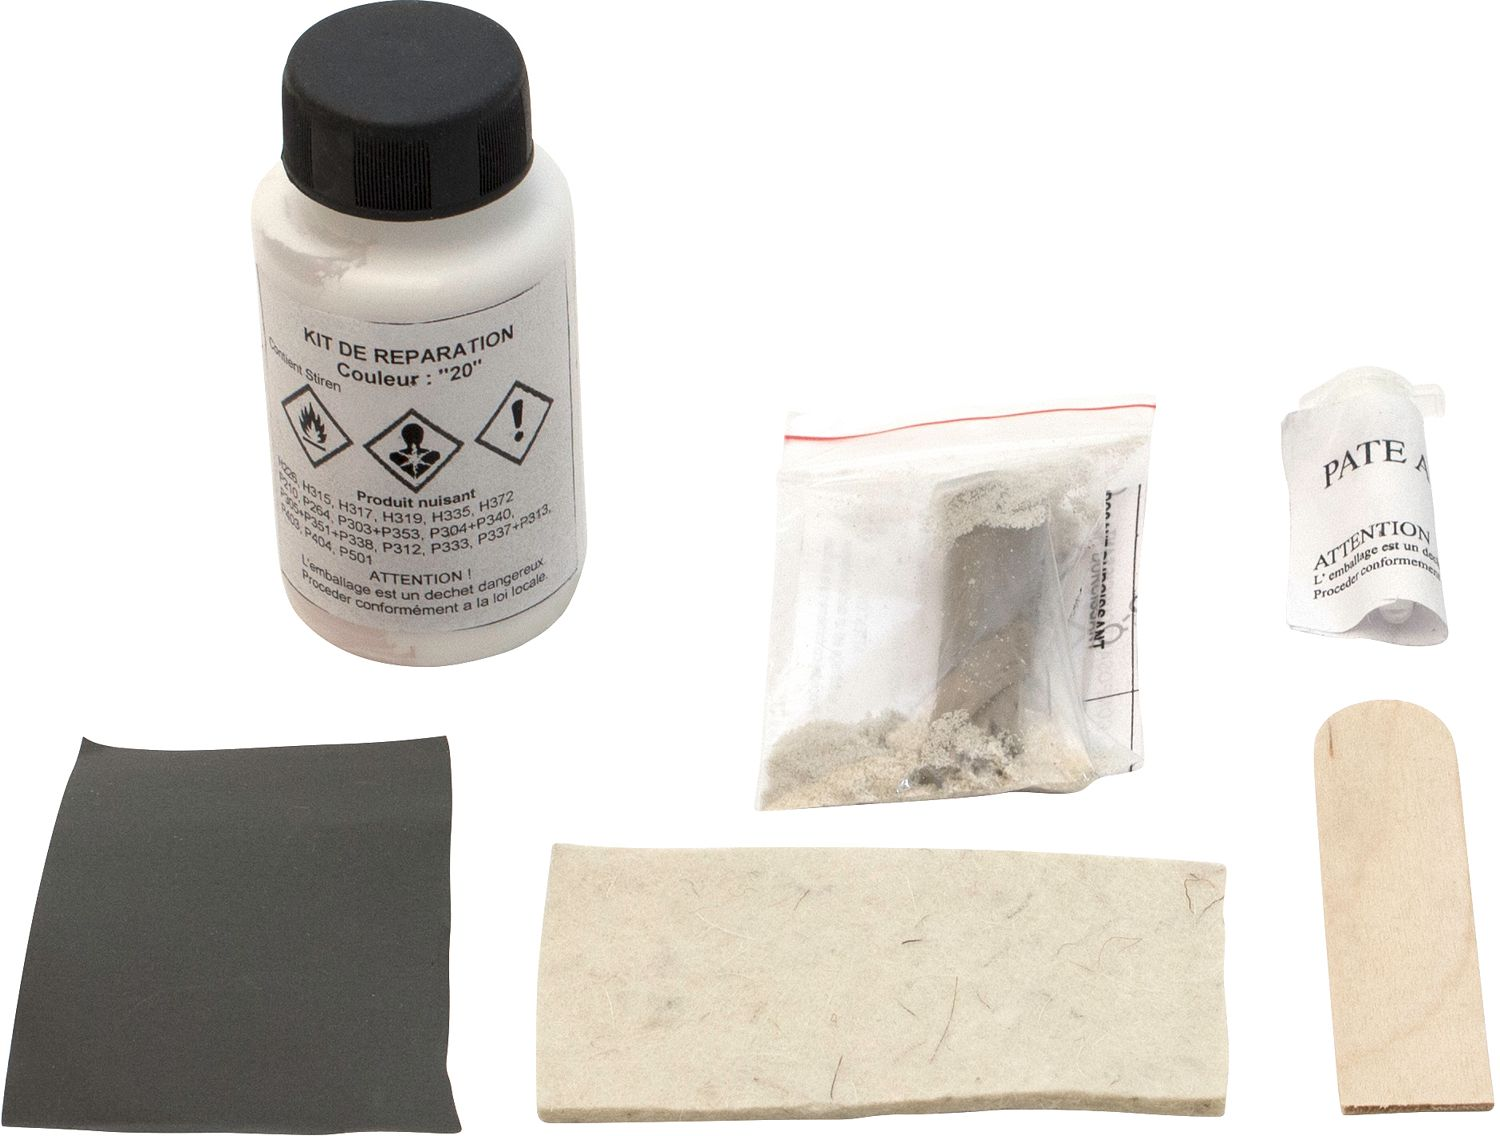 KIT DE REPARATION SOLID